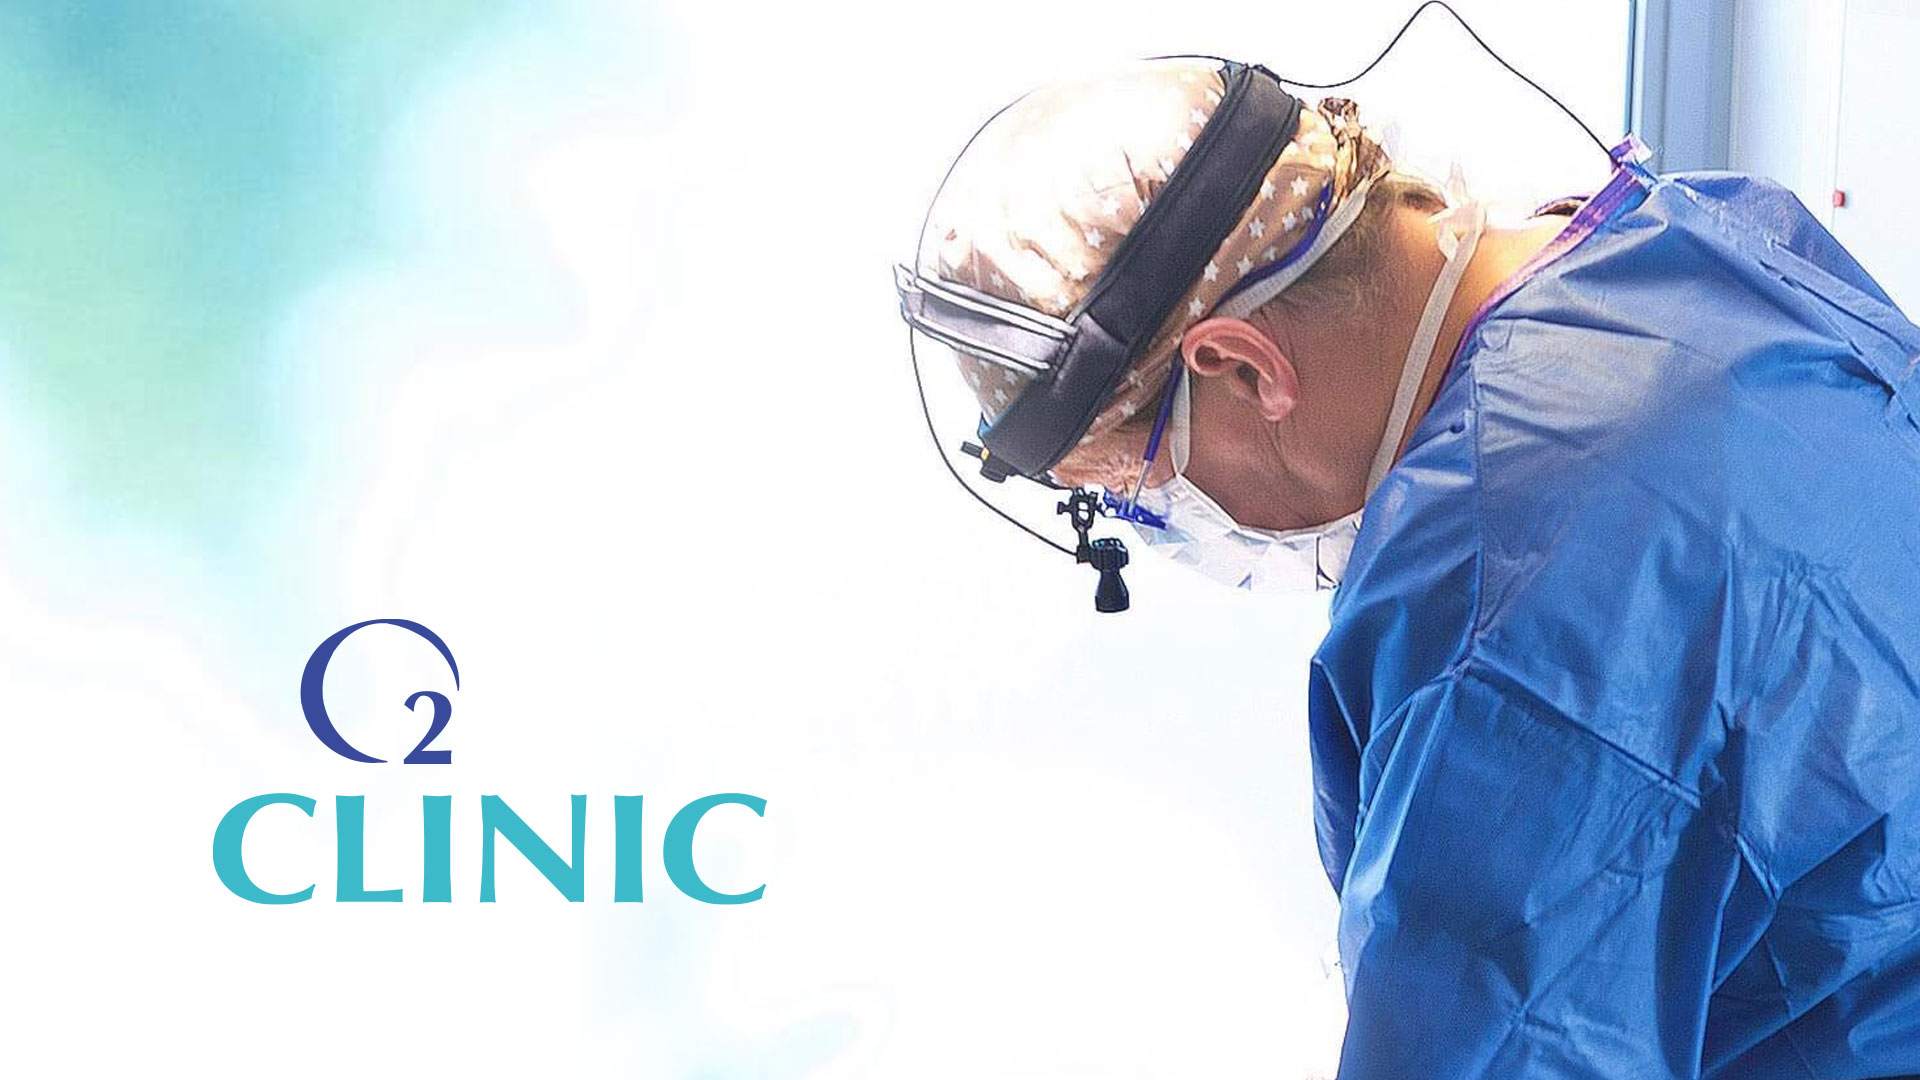 O2 Clinic Team Specialised In Aesthetic Surgery O2 Clinic